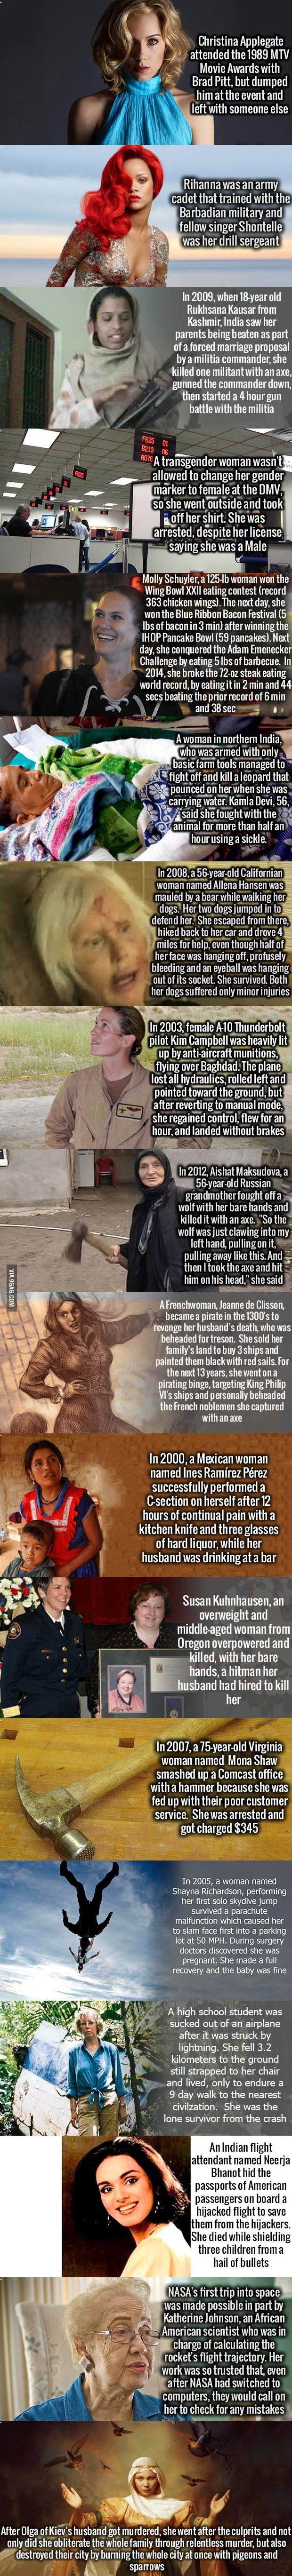 These 18 Women Never Made It Into History Books, But They Should Have.